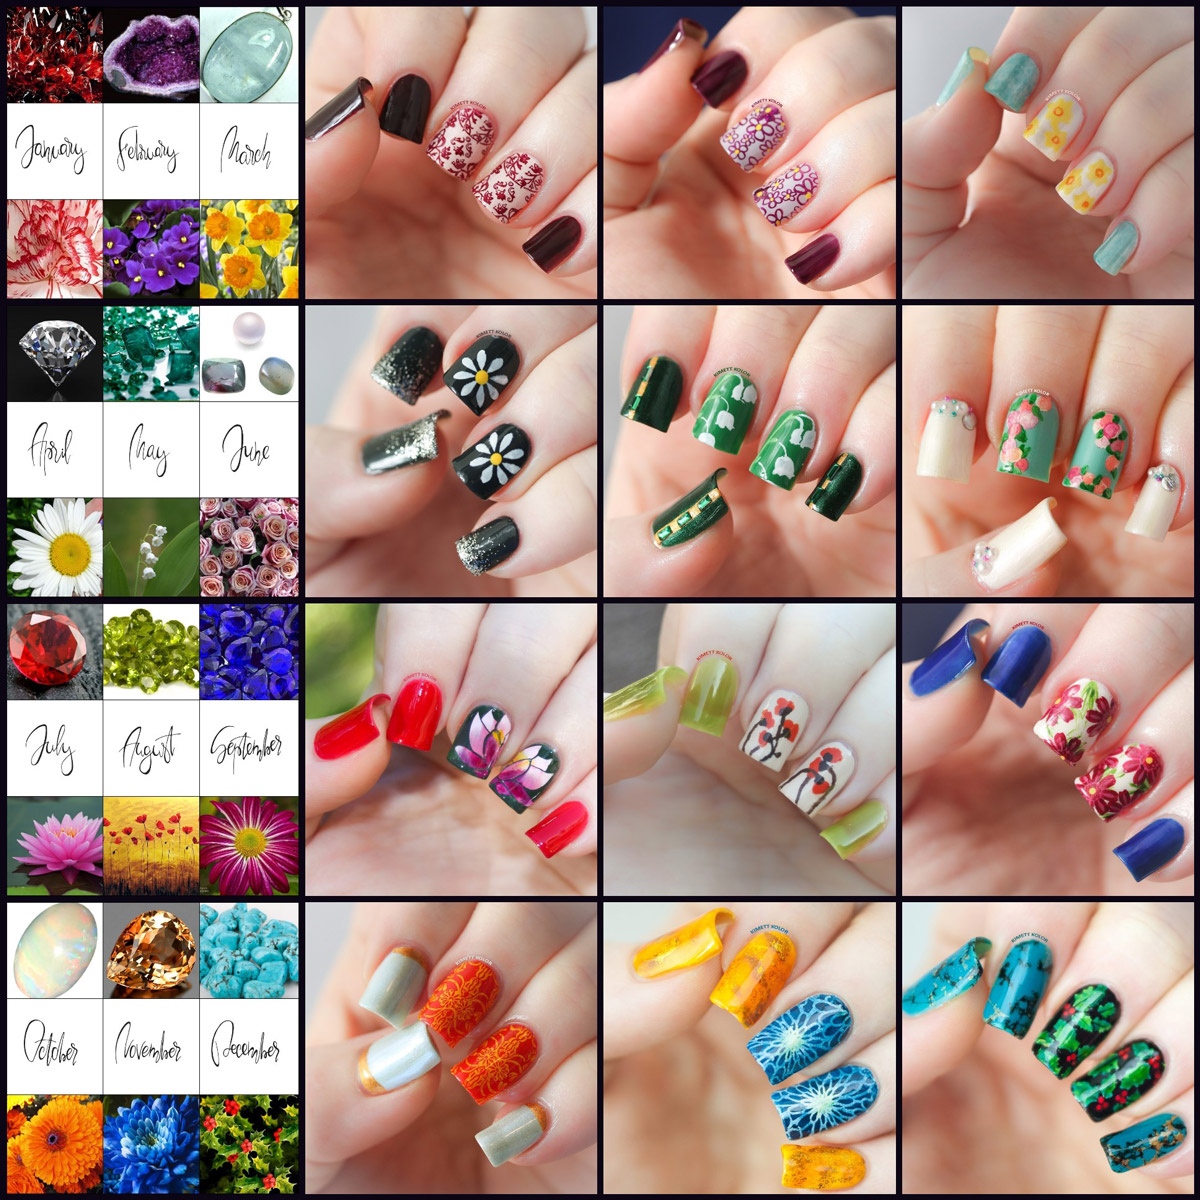 Nail Art for Every Month of the Year – Featuring Birthstones and Birthday Flowers